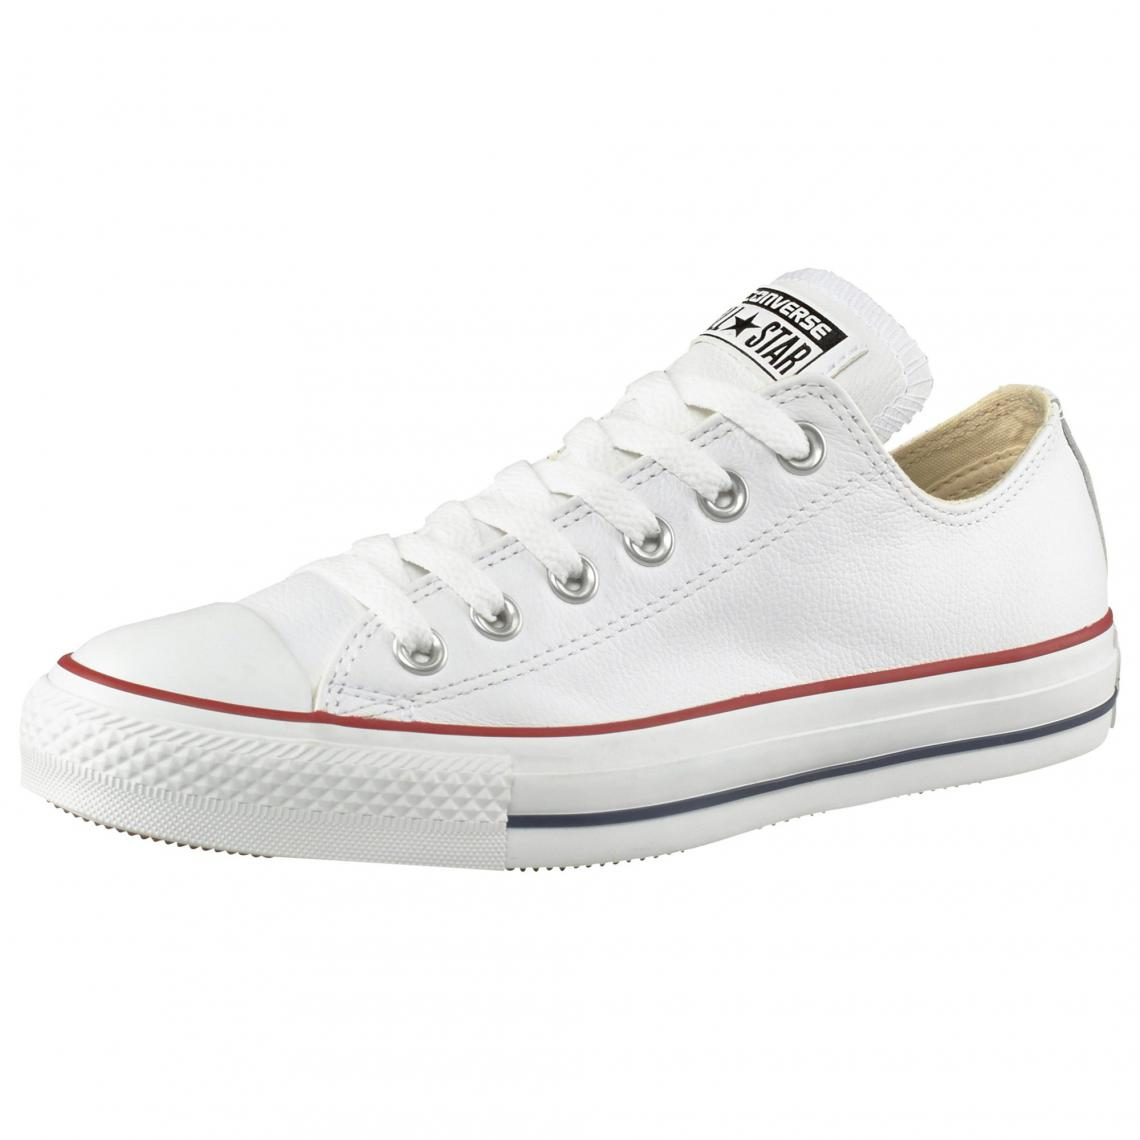 39af47ade5a Baskets basses Converse All Star Basic Leather Ox cuir - Blanc Converse  Homme